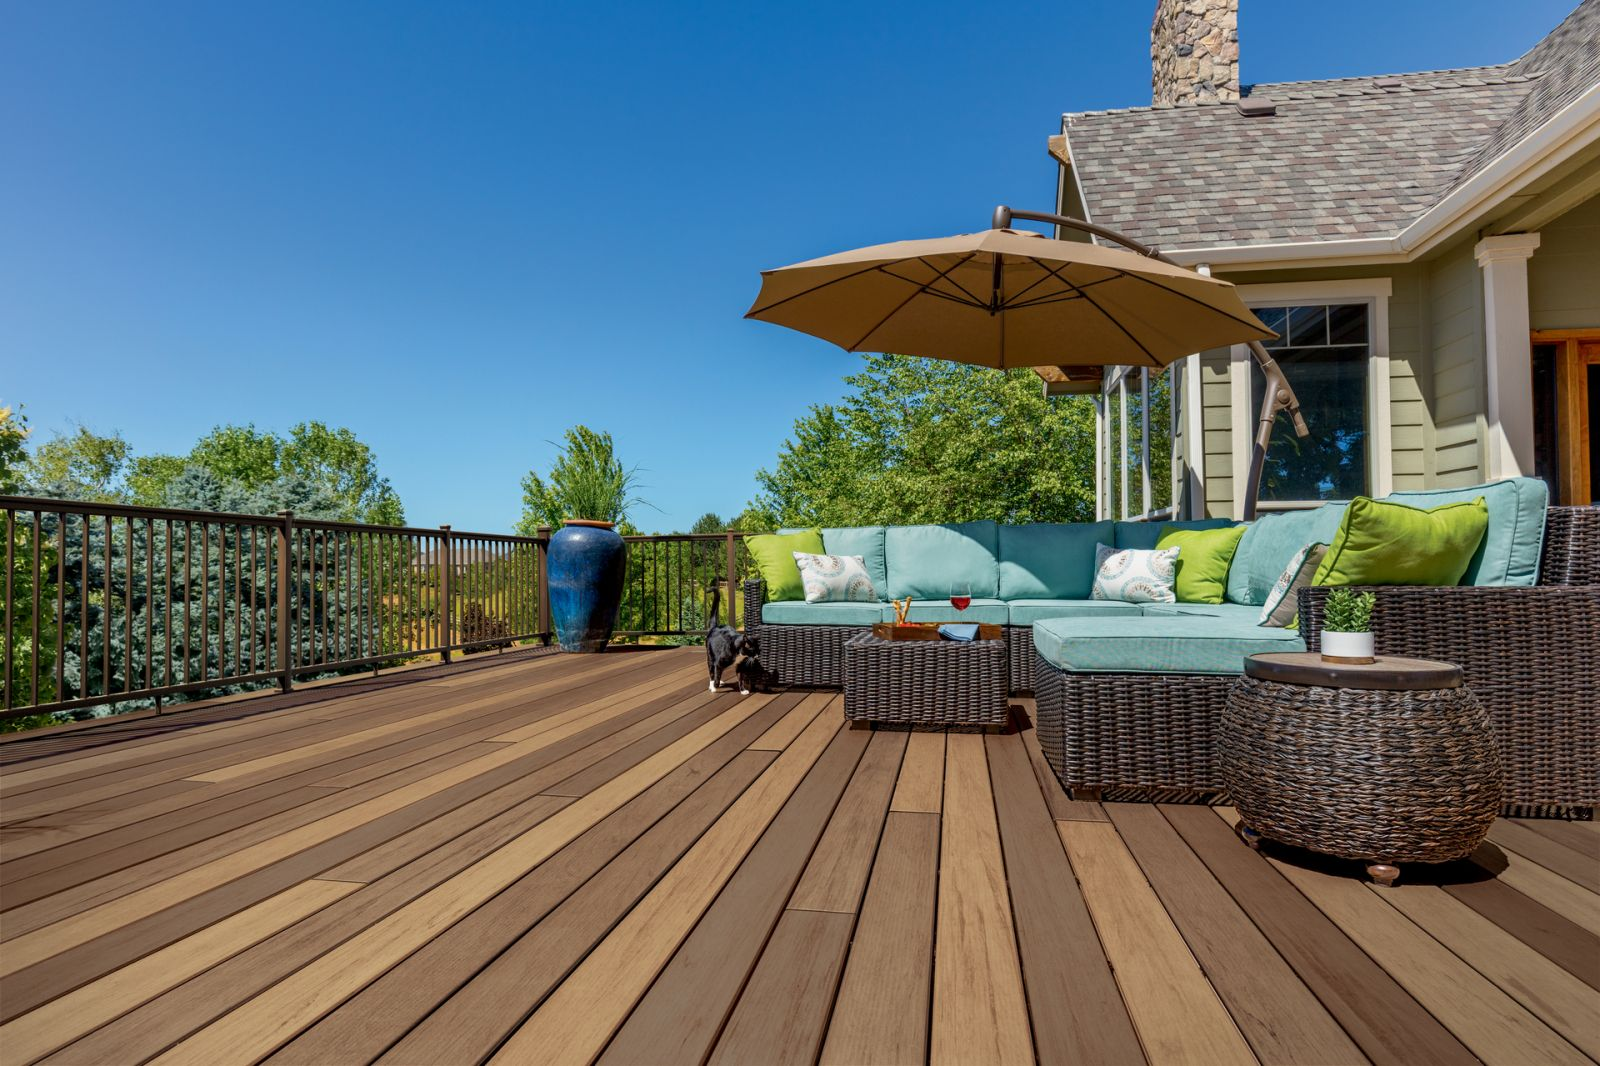 TimberTech Decking - Tigerwood Pecan Mix Day